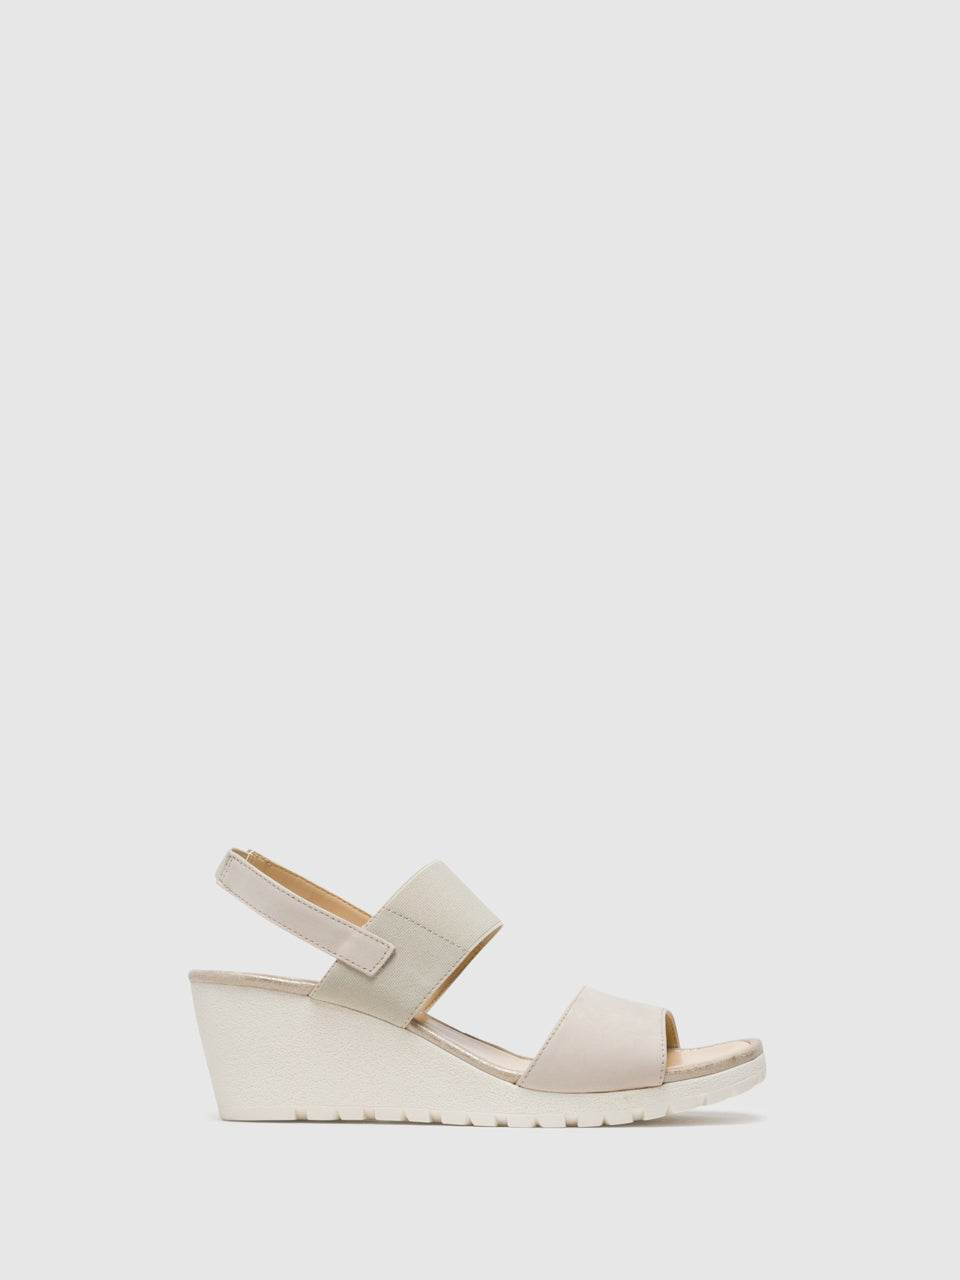 The Flexx Beige Wedge Sandals